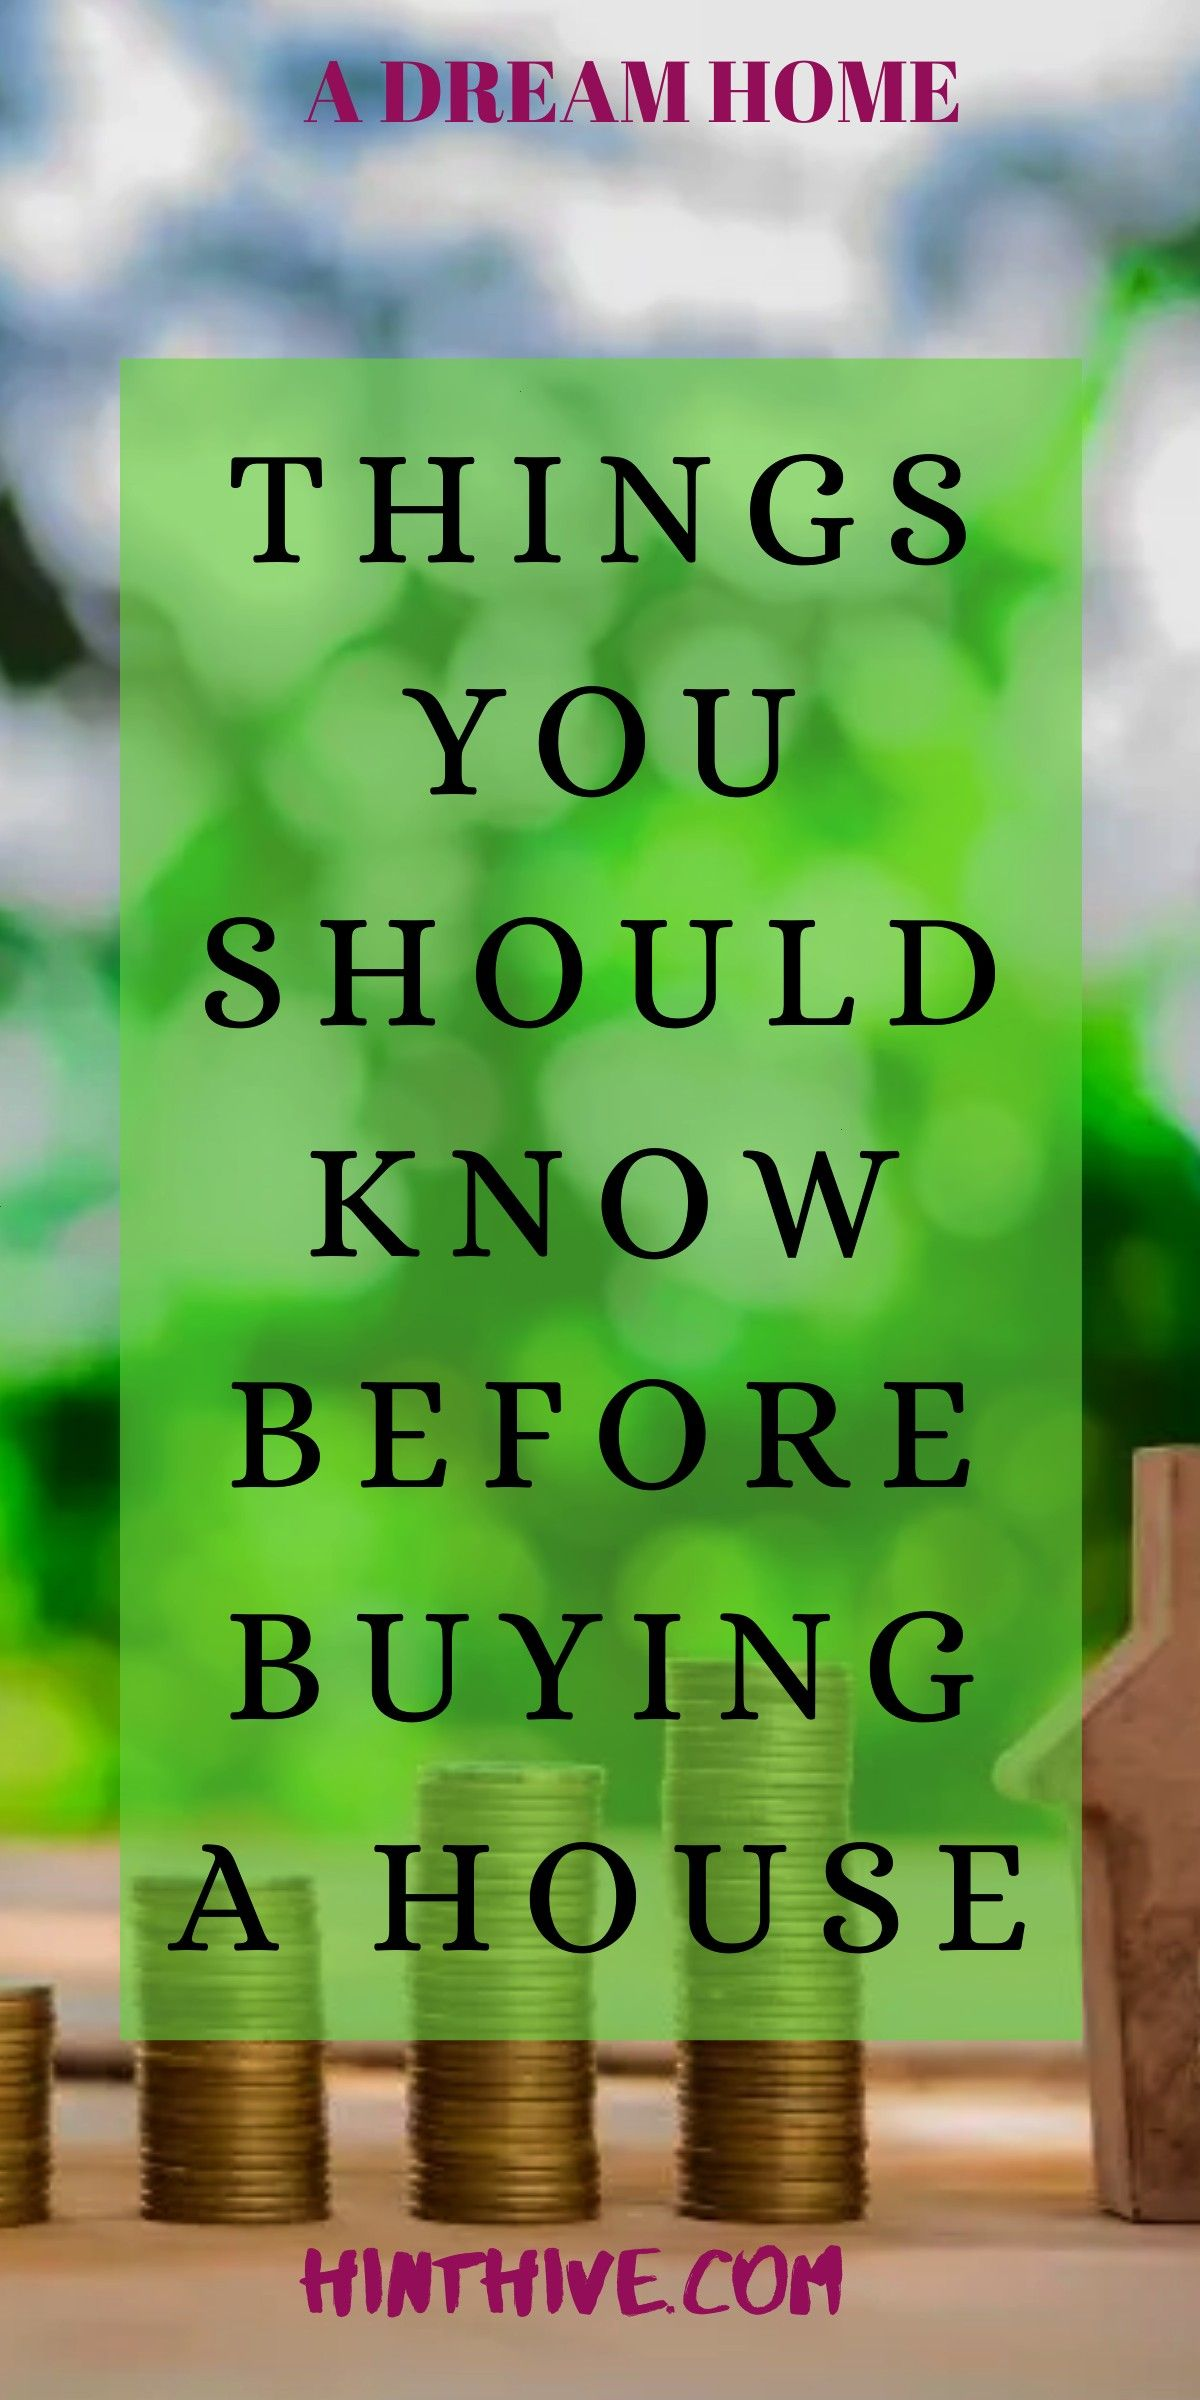 you should know before buying a house One of the goals that many people want to accomplish is to have their own home so much so that there are those who think that rentin...